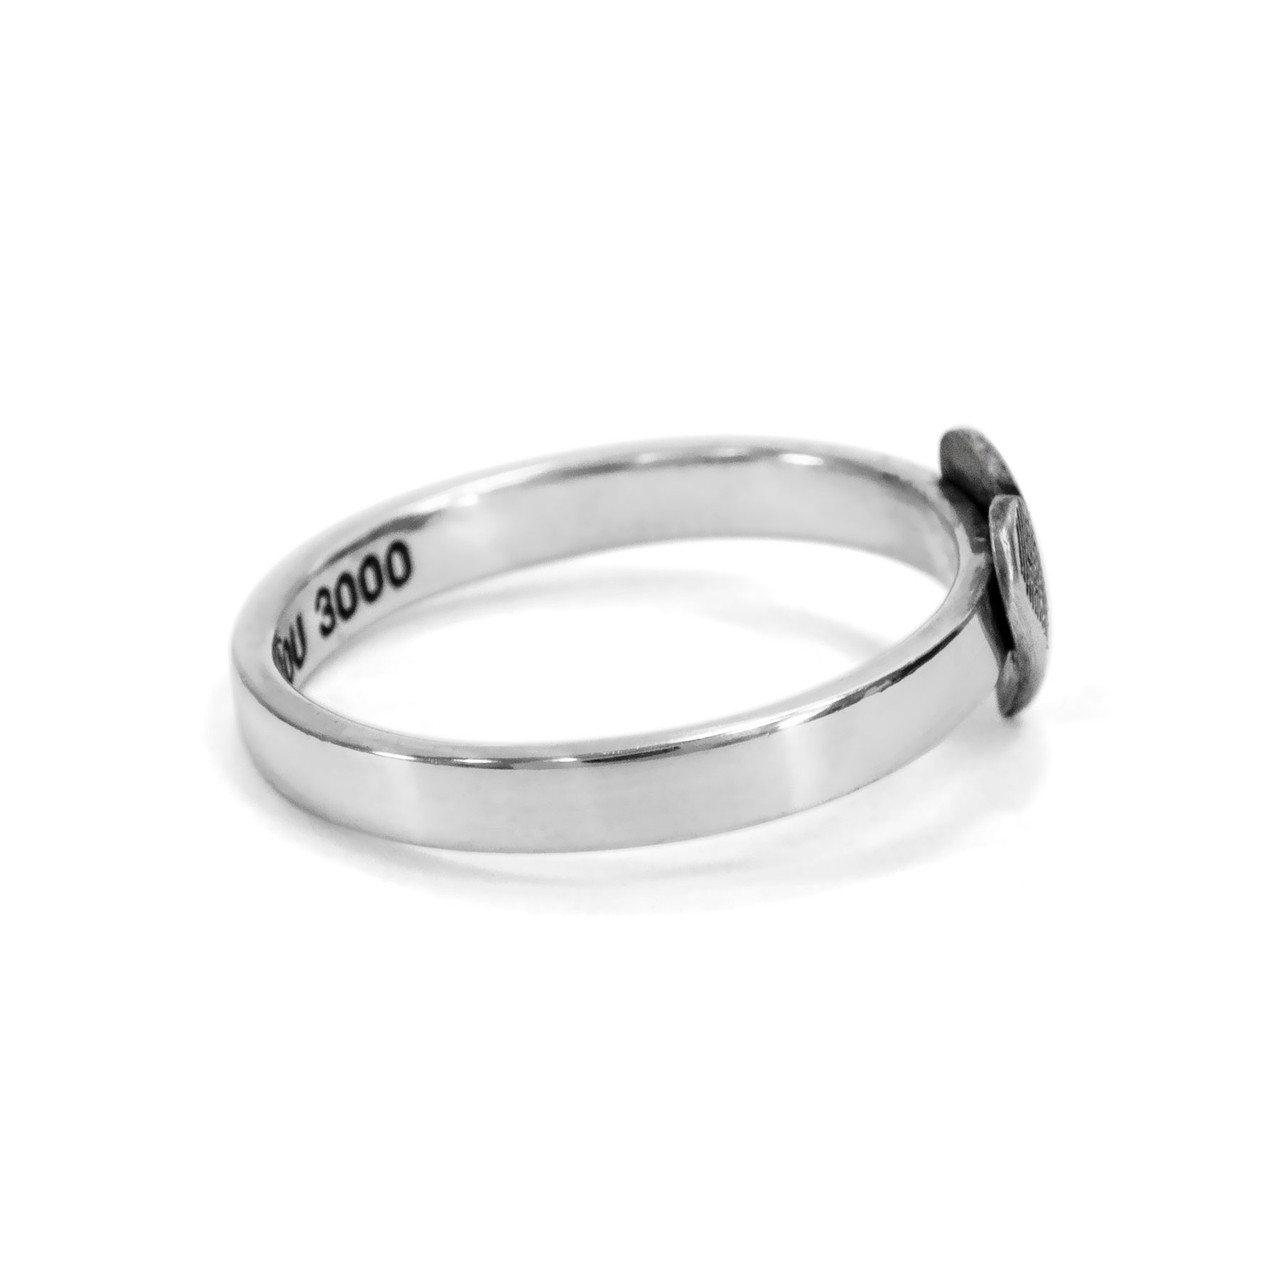 custom heart shaped fingerprint jewelry ring in sterling silver, shown from the side, on white